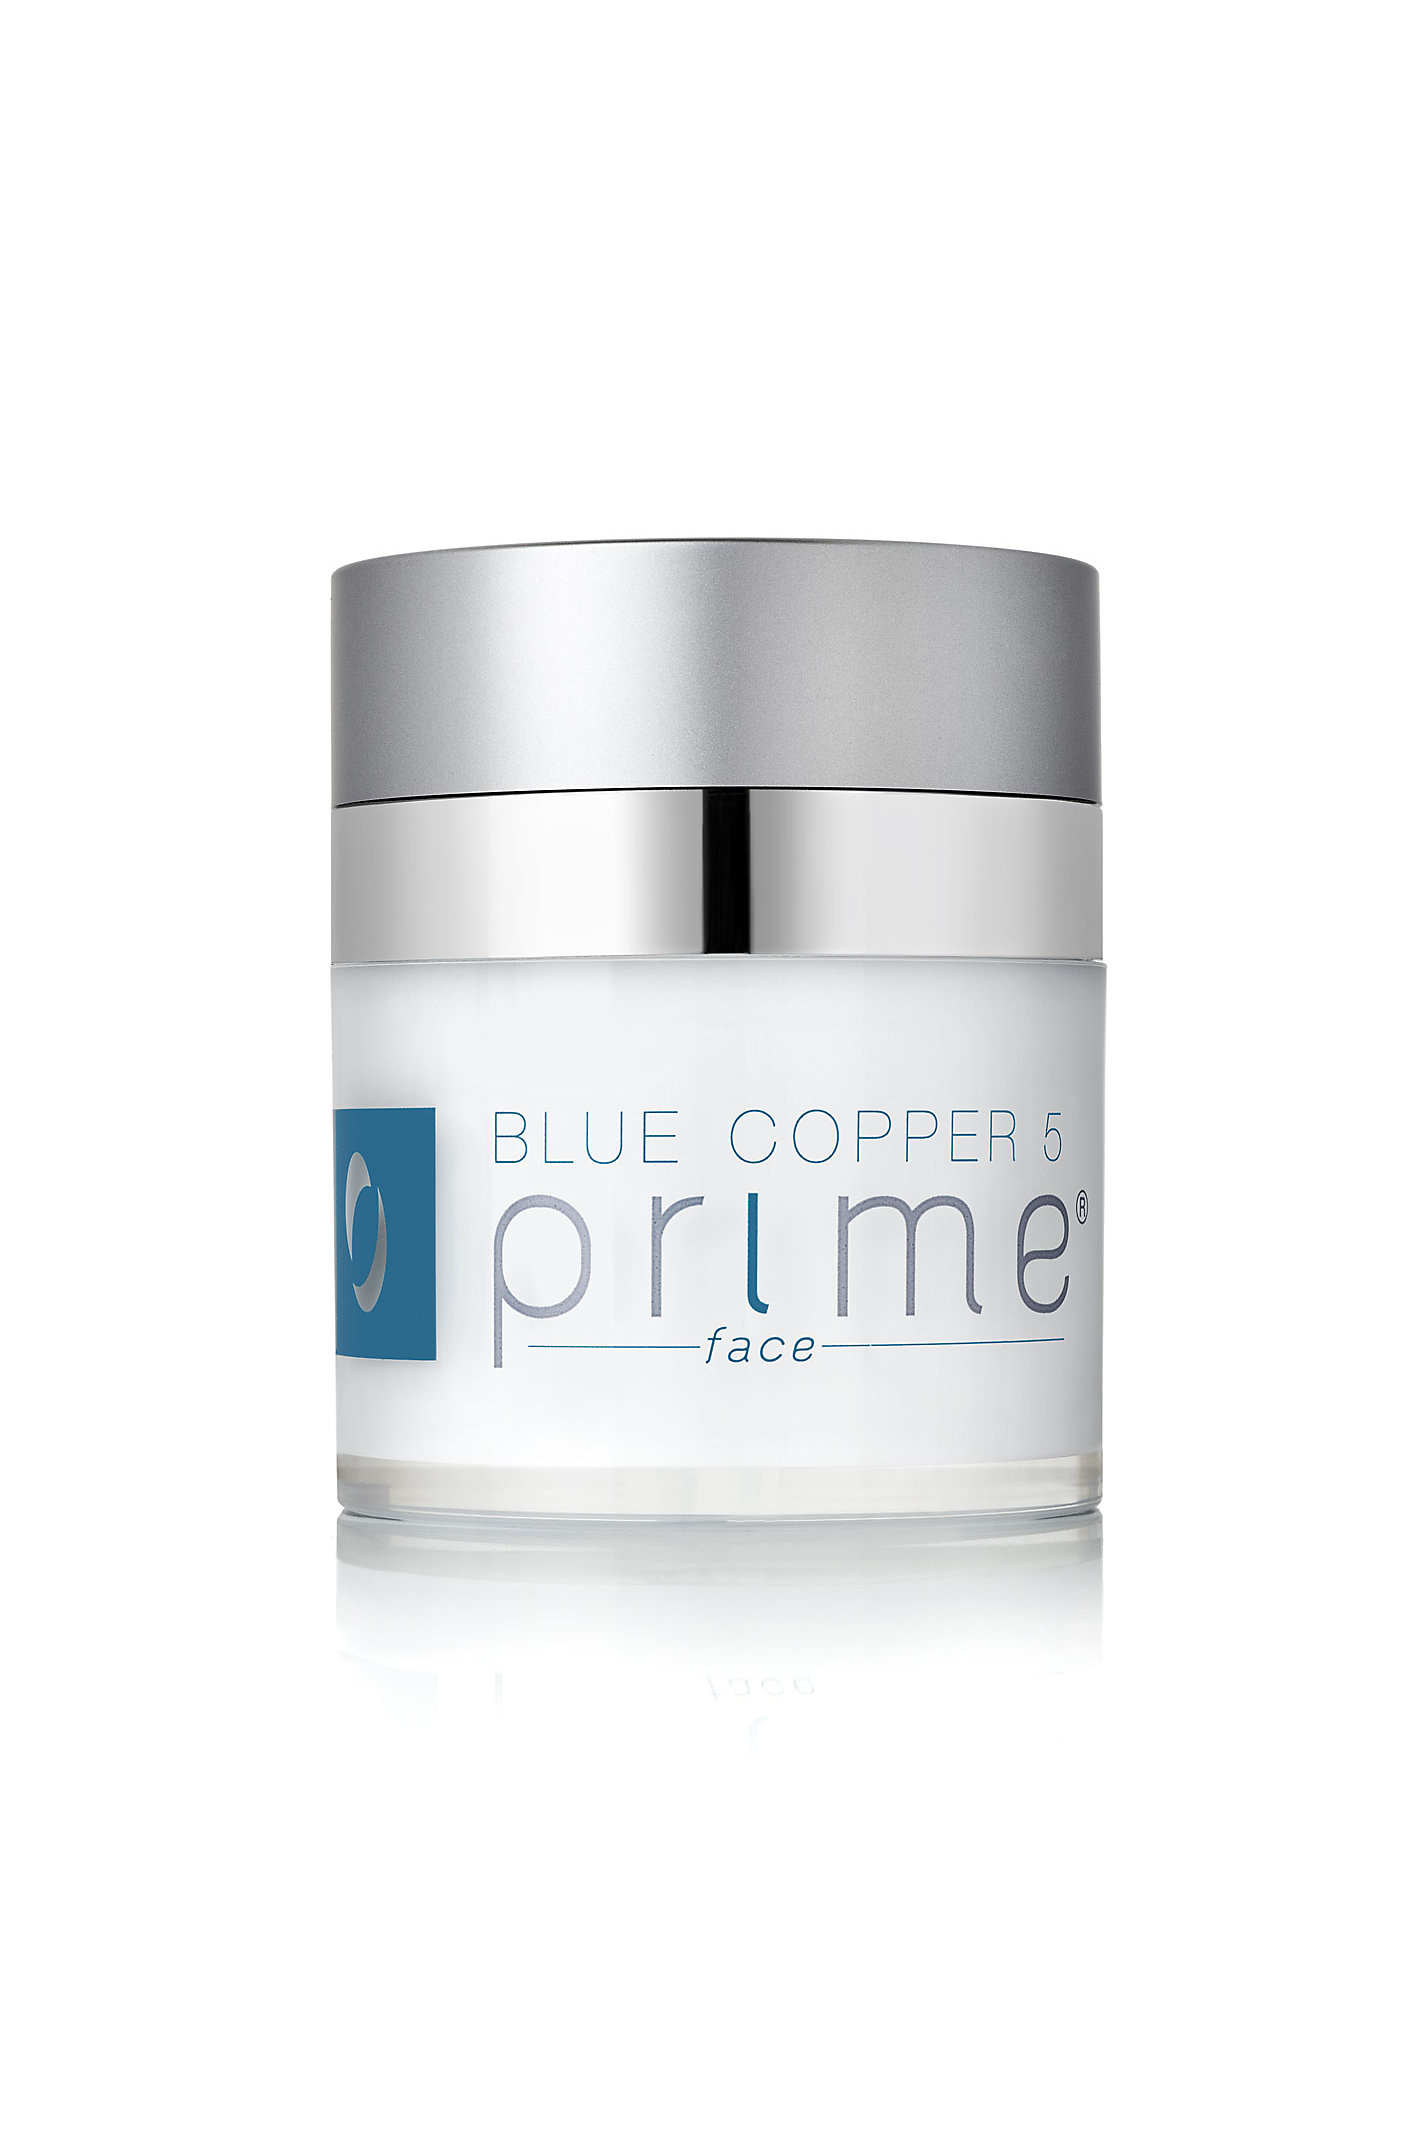 Blue Copper 5 Prime Face